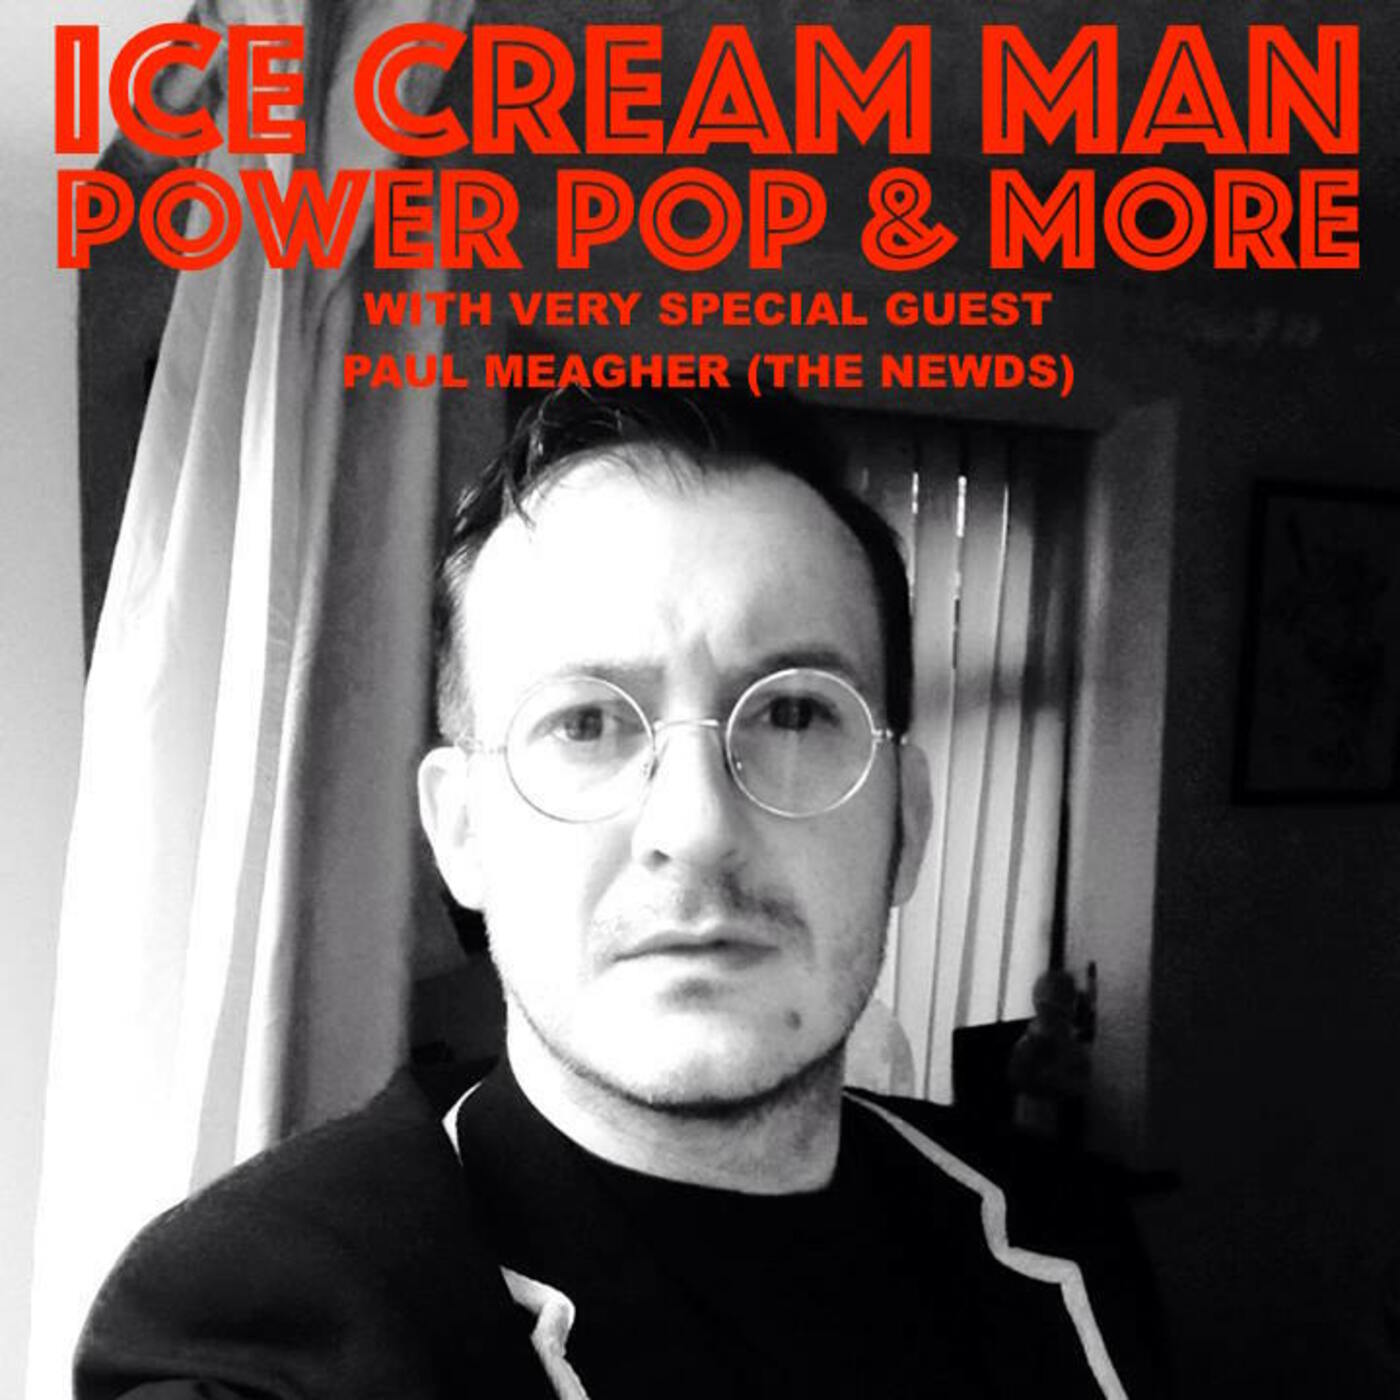 Ice Cream Man Power Pop And More #204 with Special guest Paul Meagher